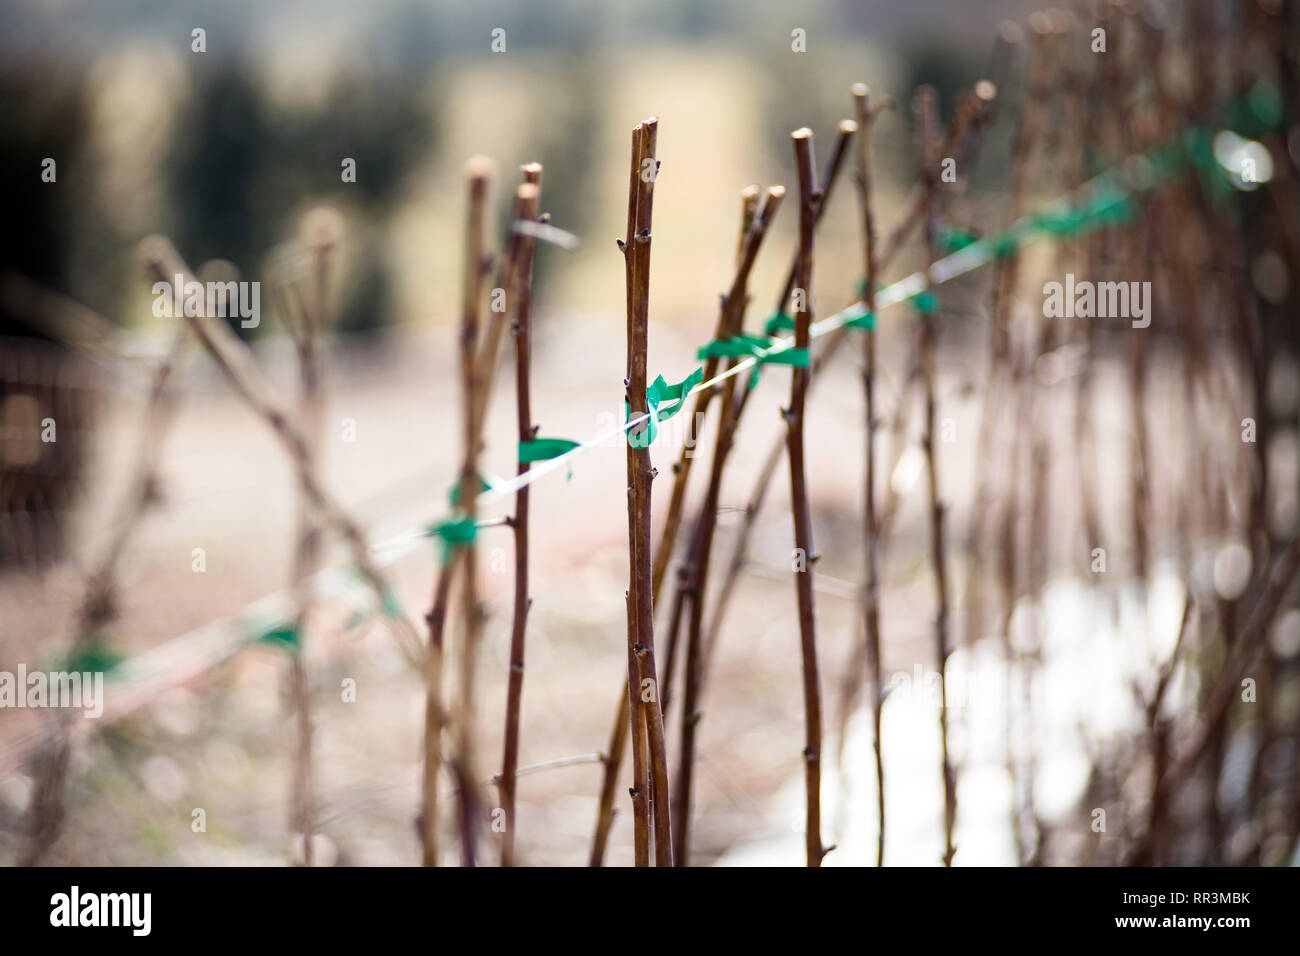 Raspberry canes cultivation in winter outdoors on a farm or garden in a close up view - Stock Image